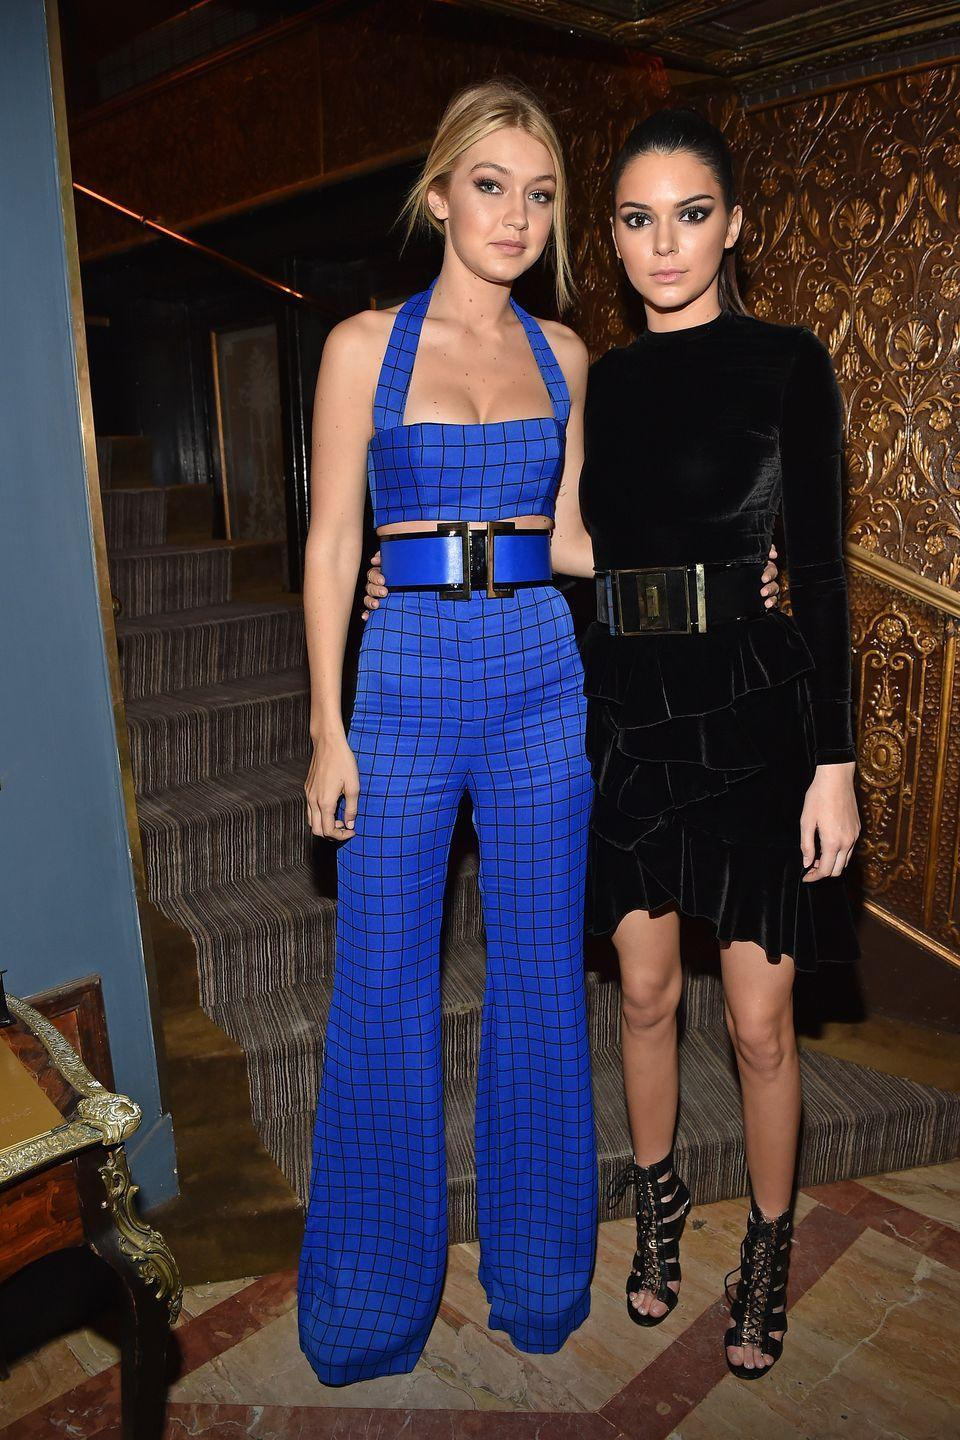 """<p>""""Gigi is the best girlfriend a KenGi could ask for."""" — Kendall Jenner, <a href=""""https://twitter.com/KendallJenner/status/692845239703199746?ref_src=twsrc%5Etfw&ref_url=http%3A%2F%2Fwww.seventeen.com%2Fcelebrity%2Fnews%2Fa37632%2Fkendall-jenner-calls-gigi-hadid-the-best-girlfriend-after-zayn-malik-says-shes-just-a-friend%2F"""" rel=""""nofollow noopener"""" target=""""_blank"""" data-ylk=""""slk:Twitter"""" class=""""link rapid-noclick-resp"""">Twitter</a> </p><p>""""She's just really helpful, but she's also the most low maintenance person and that's what I really respect about her. When you ask her a question or for advice, it's always going to be, 'Just let it happen, just let it go and, you know, be cool about it,' and that's always her thing."""" — Gigi Hadid, <em><a href=""""https://www.accessonline.com/articles/gigi-hadid-shares-best-friend-kendall-jenners-advice"""" rel=""""nofollow noopener"""" target=""""_blank"""" data-ylk=""""slk:Access Online"""" class=""""link rapid-noclick-resp"""">Access Online</a></em></p>"""